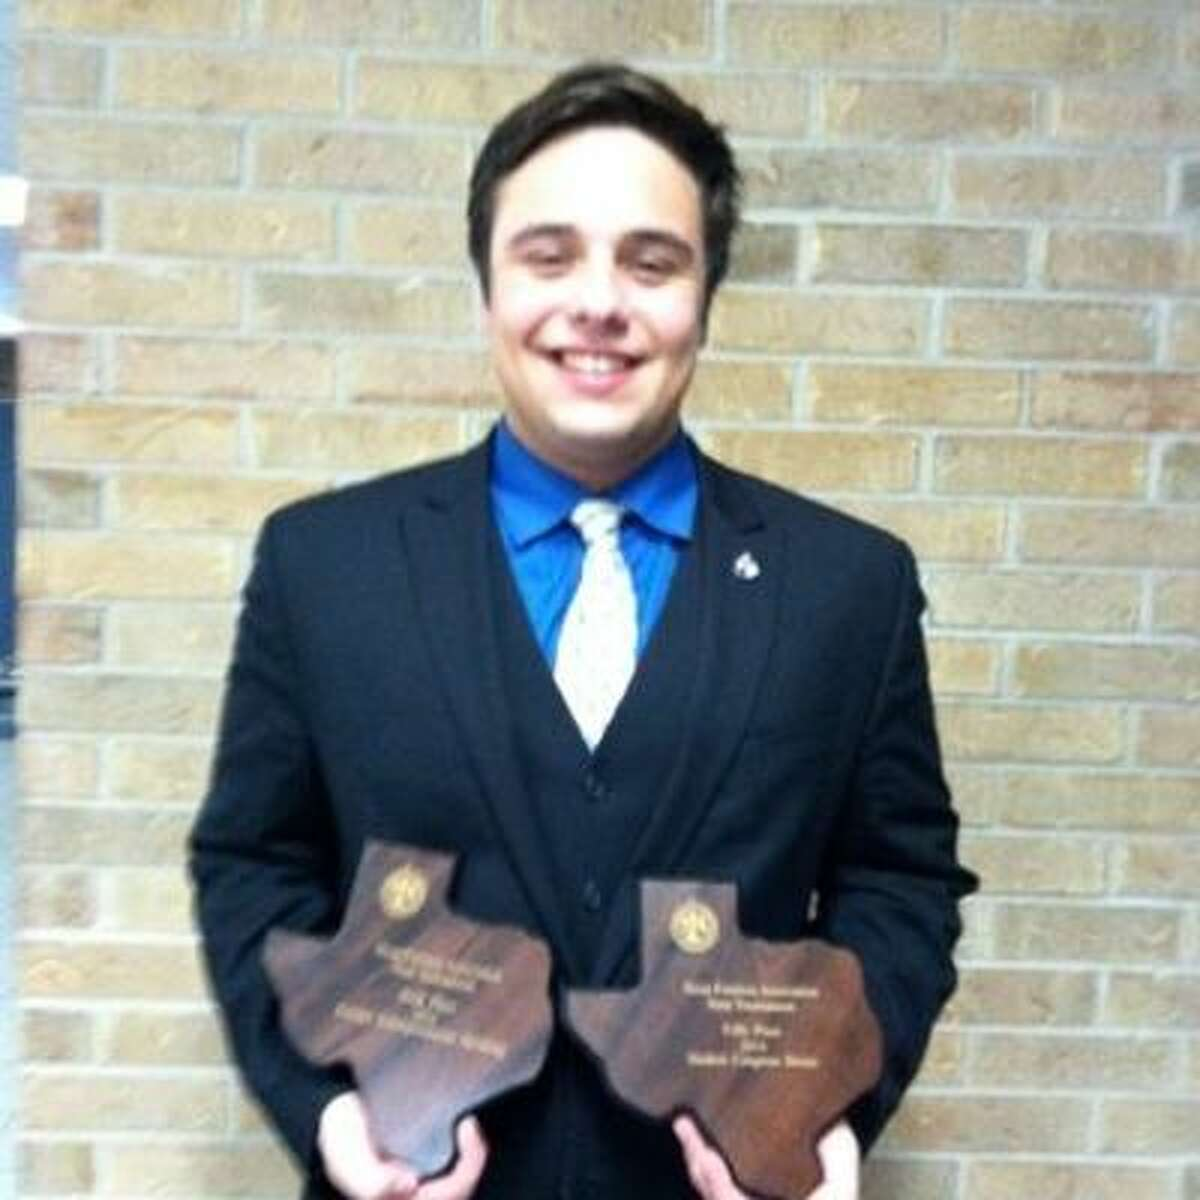 Dylan Dickens holds awards he earned in the Texas Forensic Association State Meet.